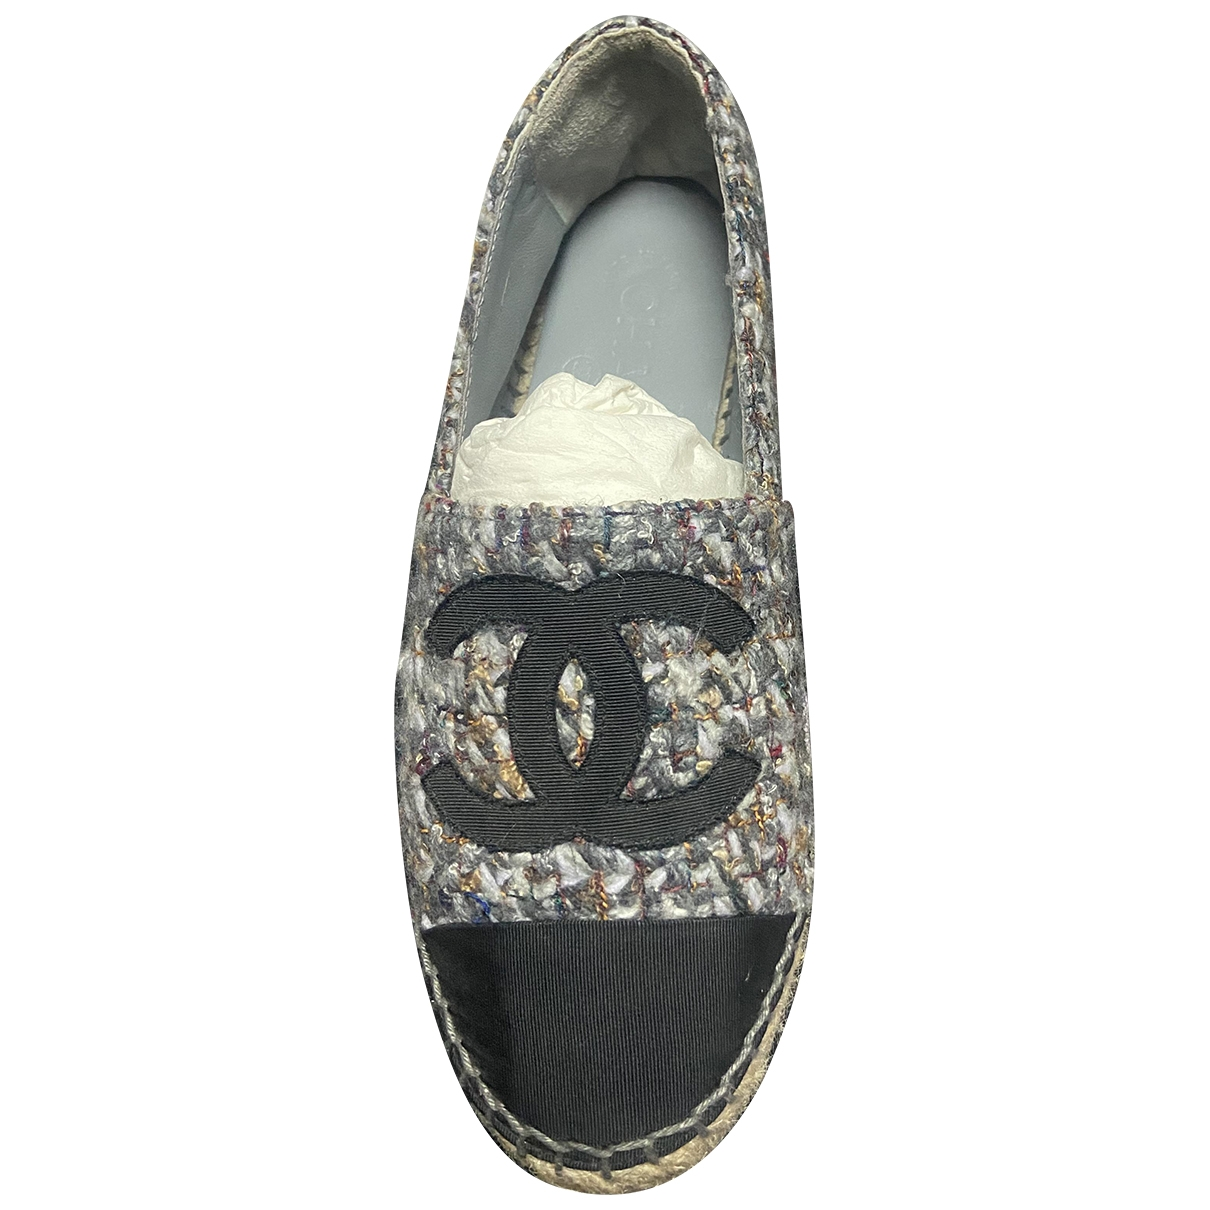 Chanel \N Espadrilles in  Grau Synthetik